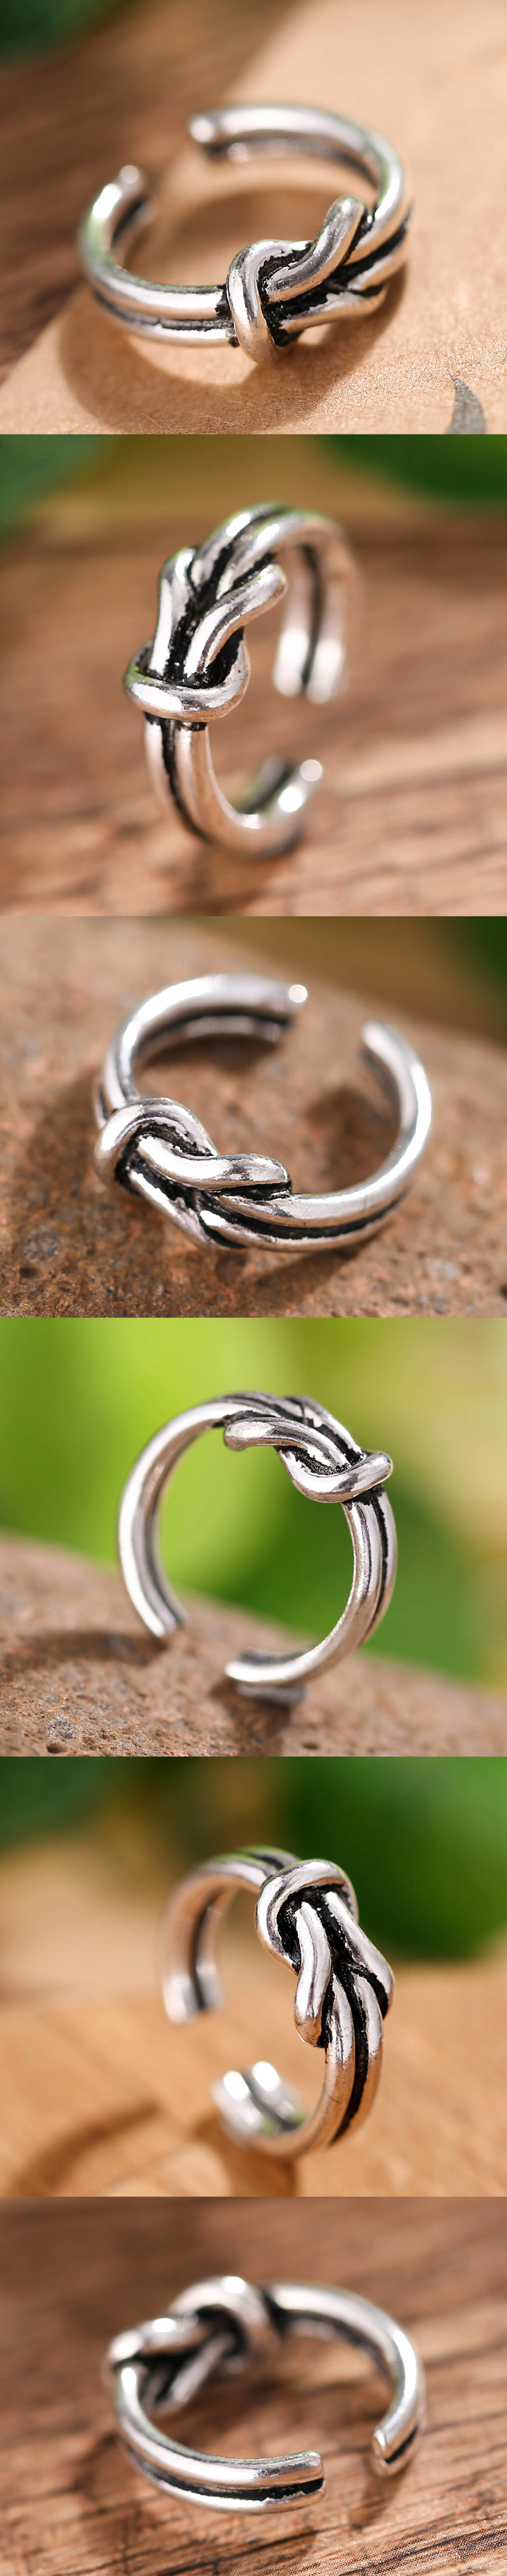 Jewellery Metal vintage split ring wholesales yiwu suppliers china NHSC203735